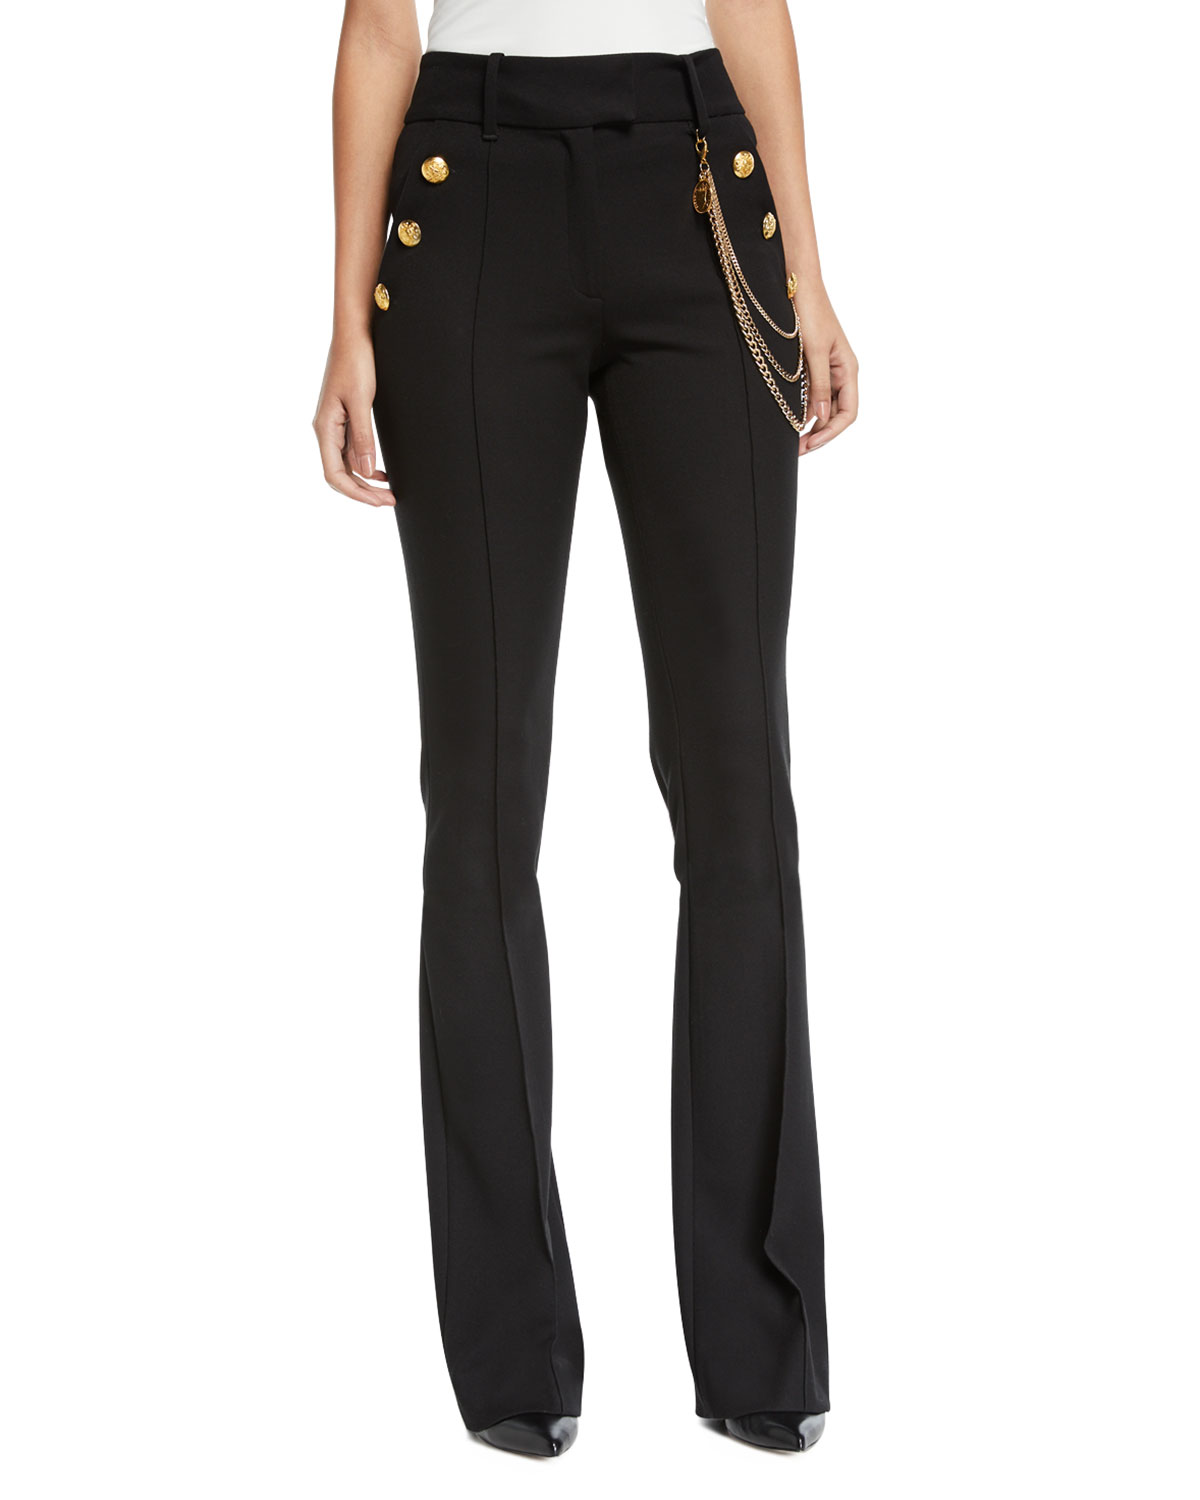 Veronica Beard Pants Alair High-Rise Boot-Cut Trousers with Chain Details, BLACK